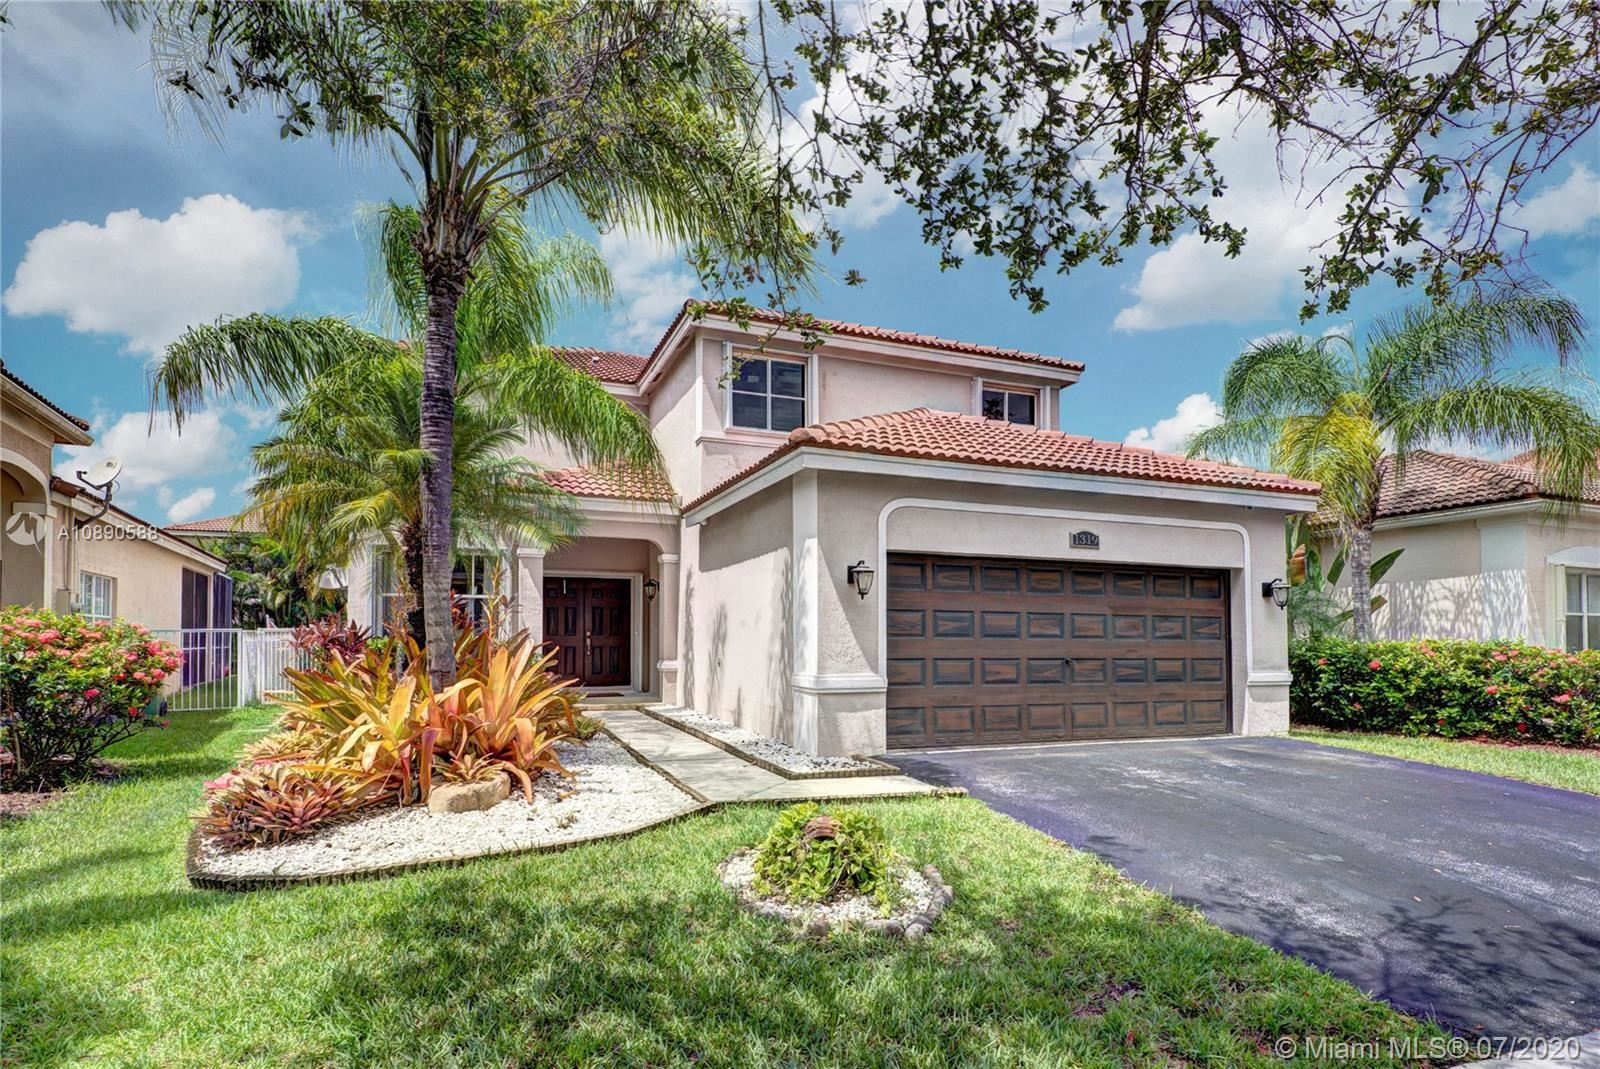 1319 Banyan Way, Weston, FL 33327 - #: A10890588